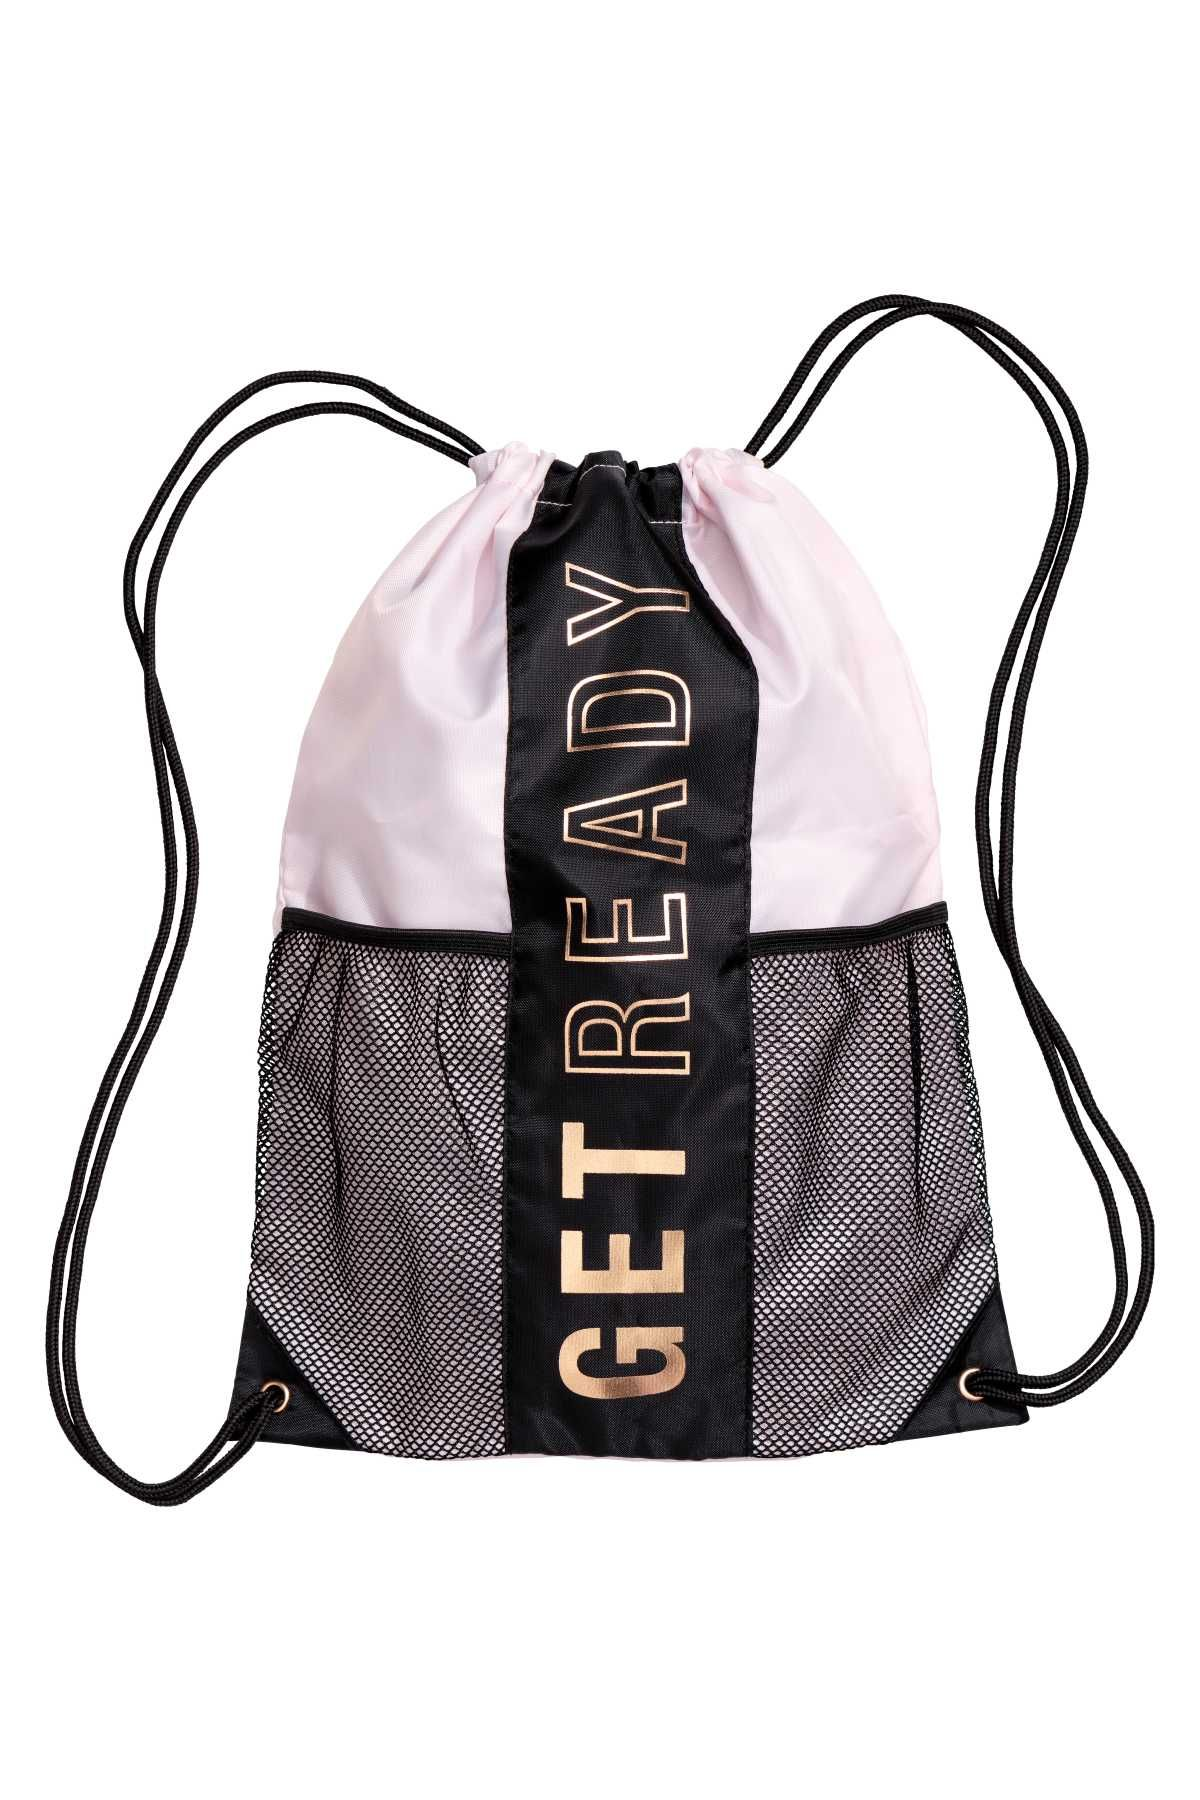 57ac54313873 Gym Bag